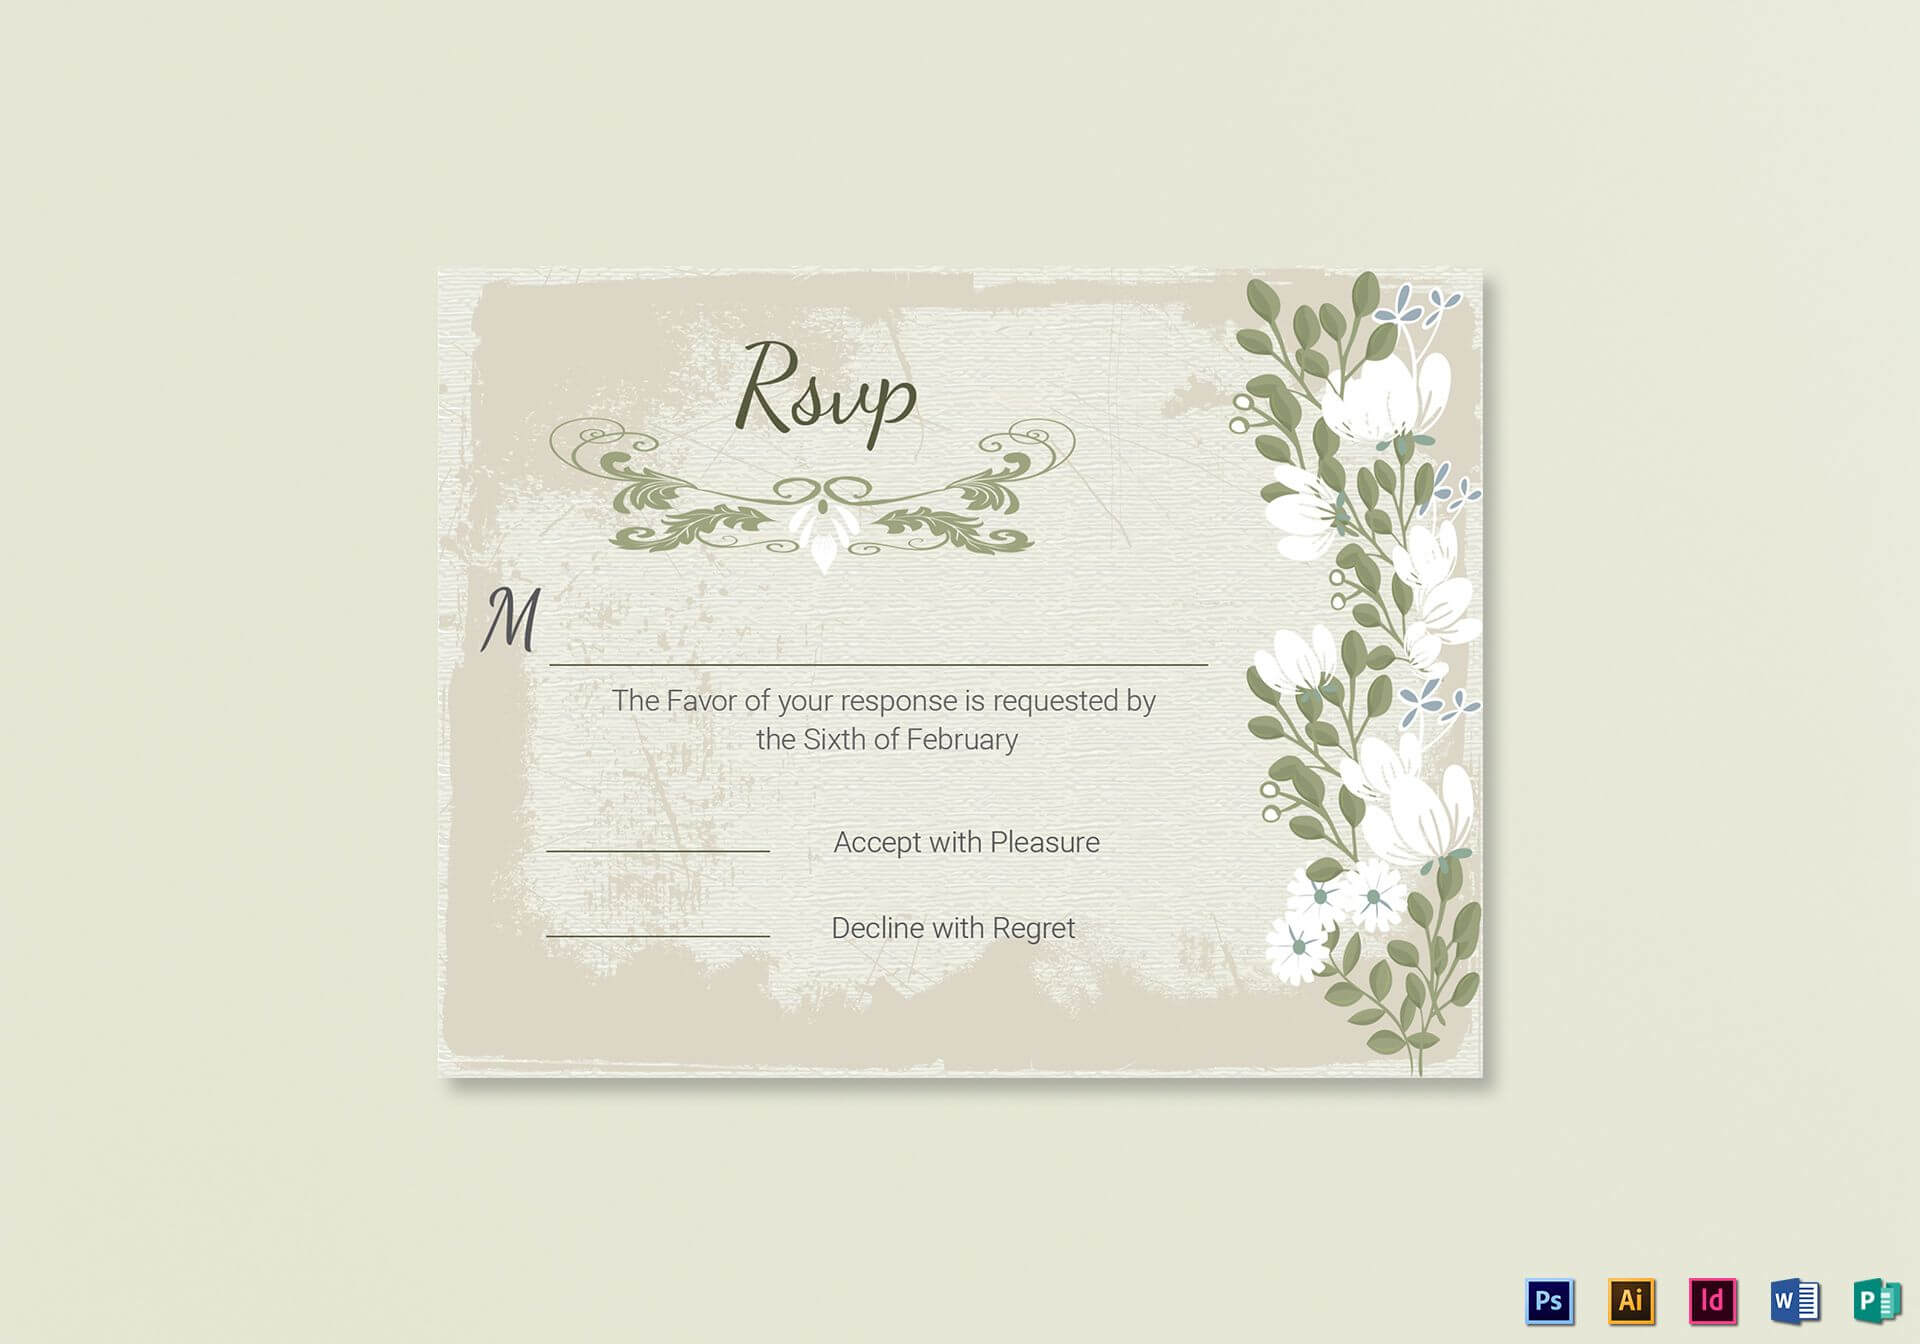 001 Template Ideas Wedding Rsvp Cards Incredible Templates In Template For Rsvp Cards For Wedding